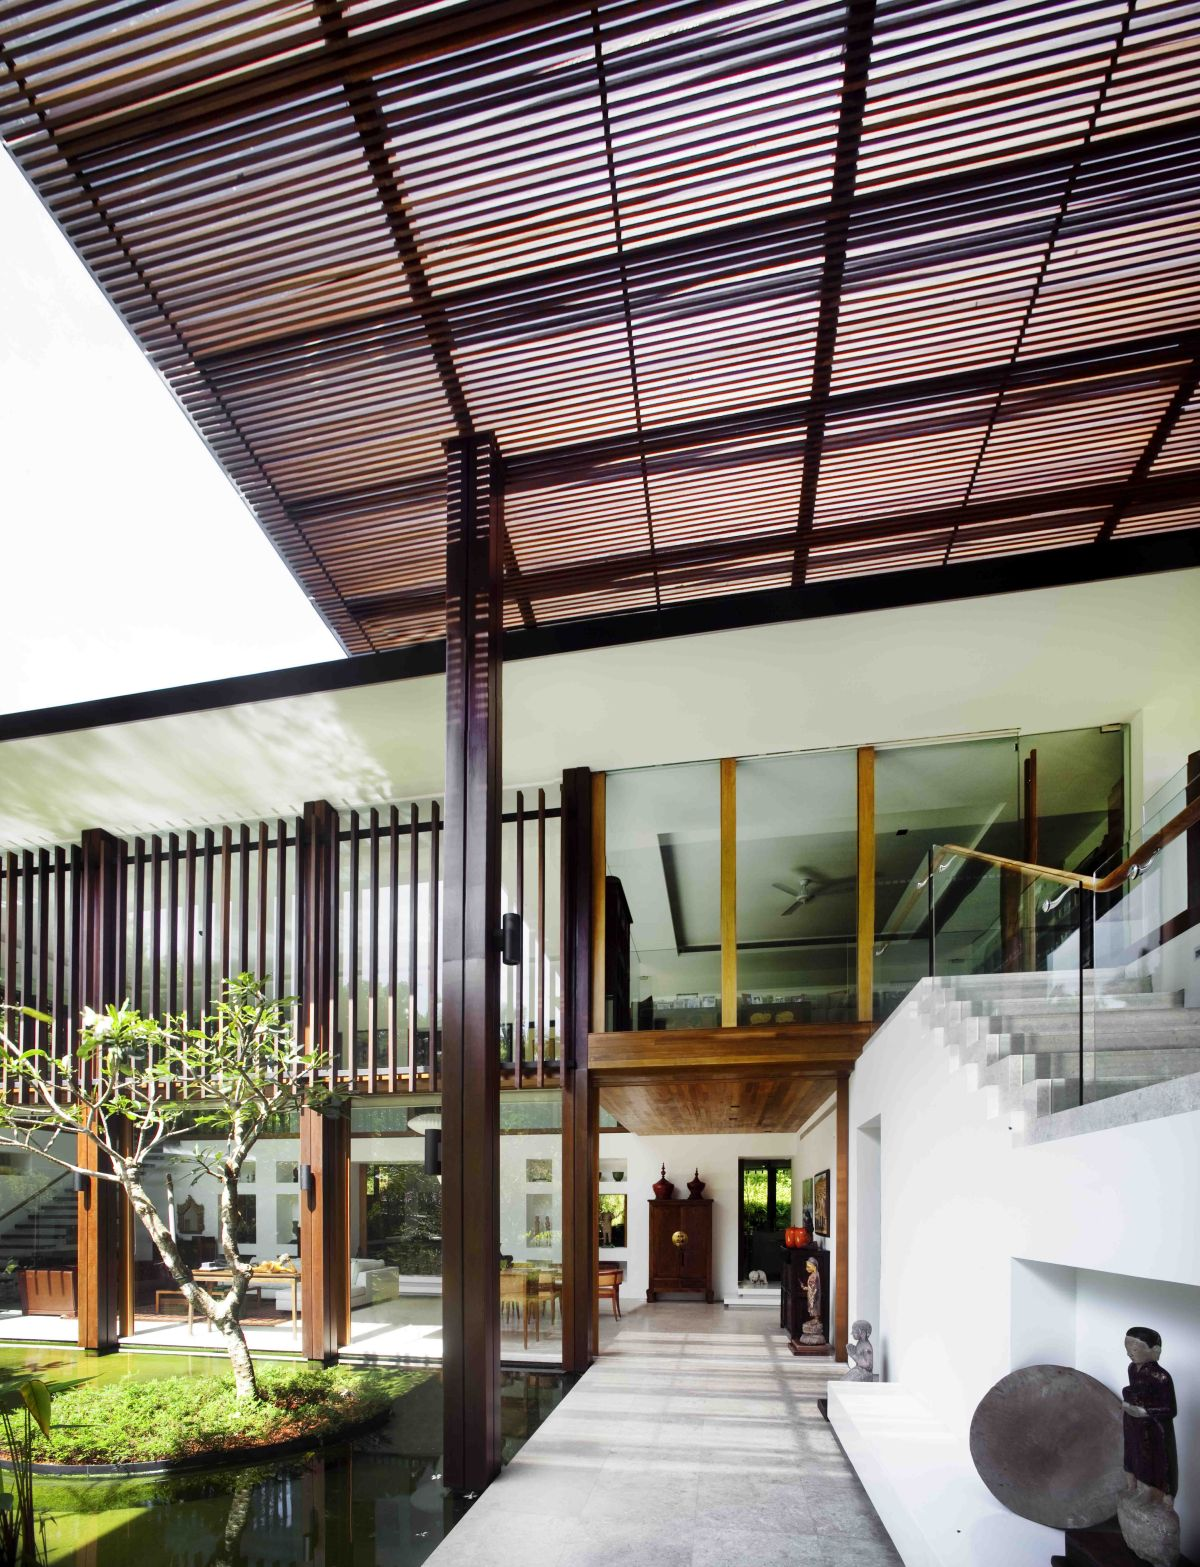 The Sun House by Guz Architects: A Hevean of Green in Singapore Displayed in a Modern Mansion contemporary interiro design warm materials